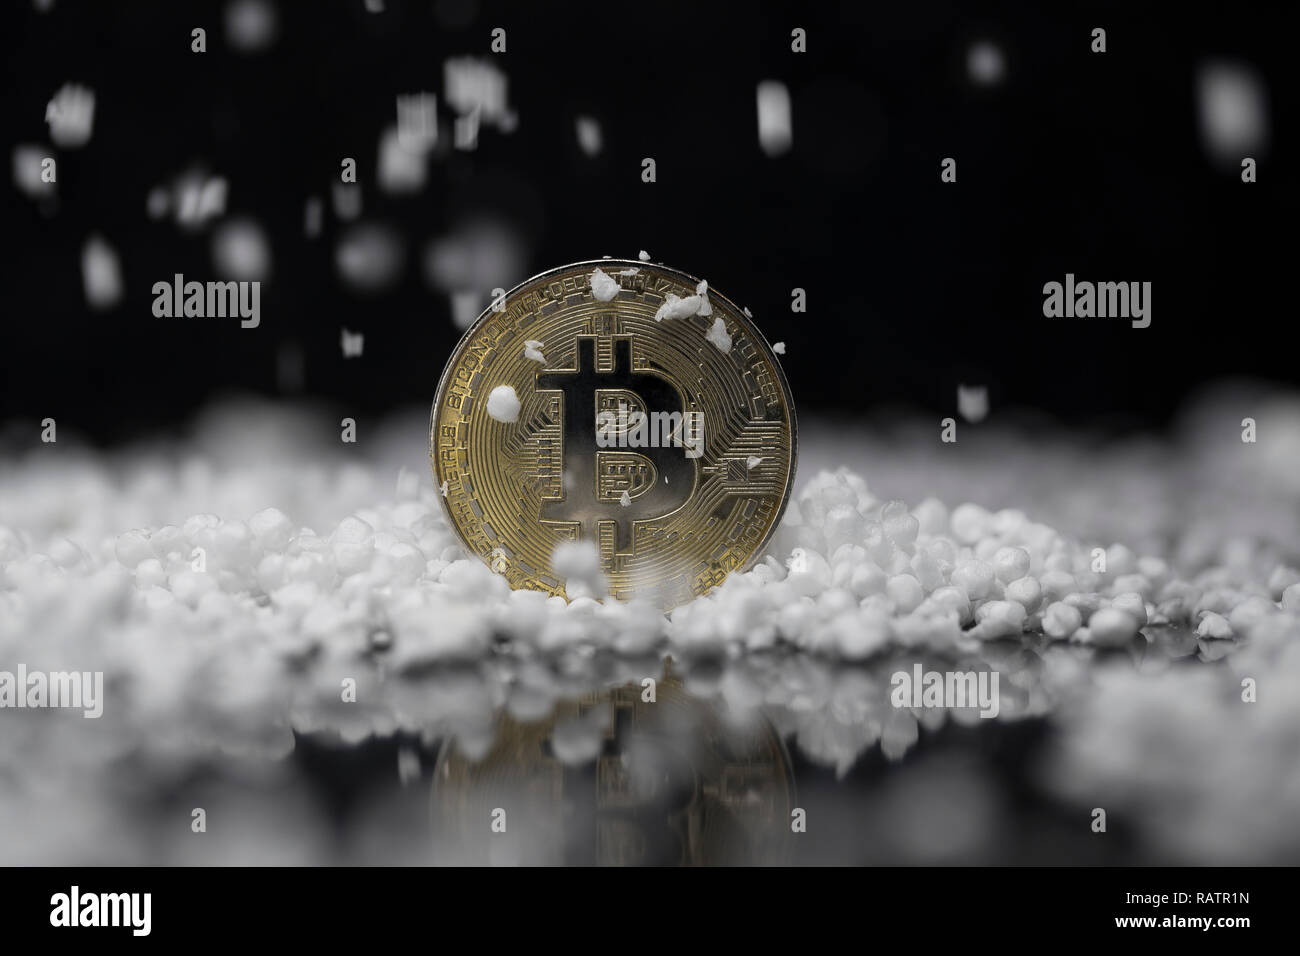 Bitcoin cryptocurrency physical coin surrounded and poured on with the fake snow in the black background - Stock Image